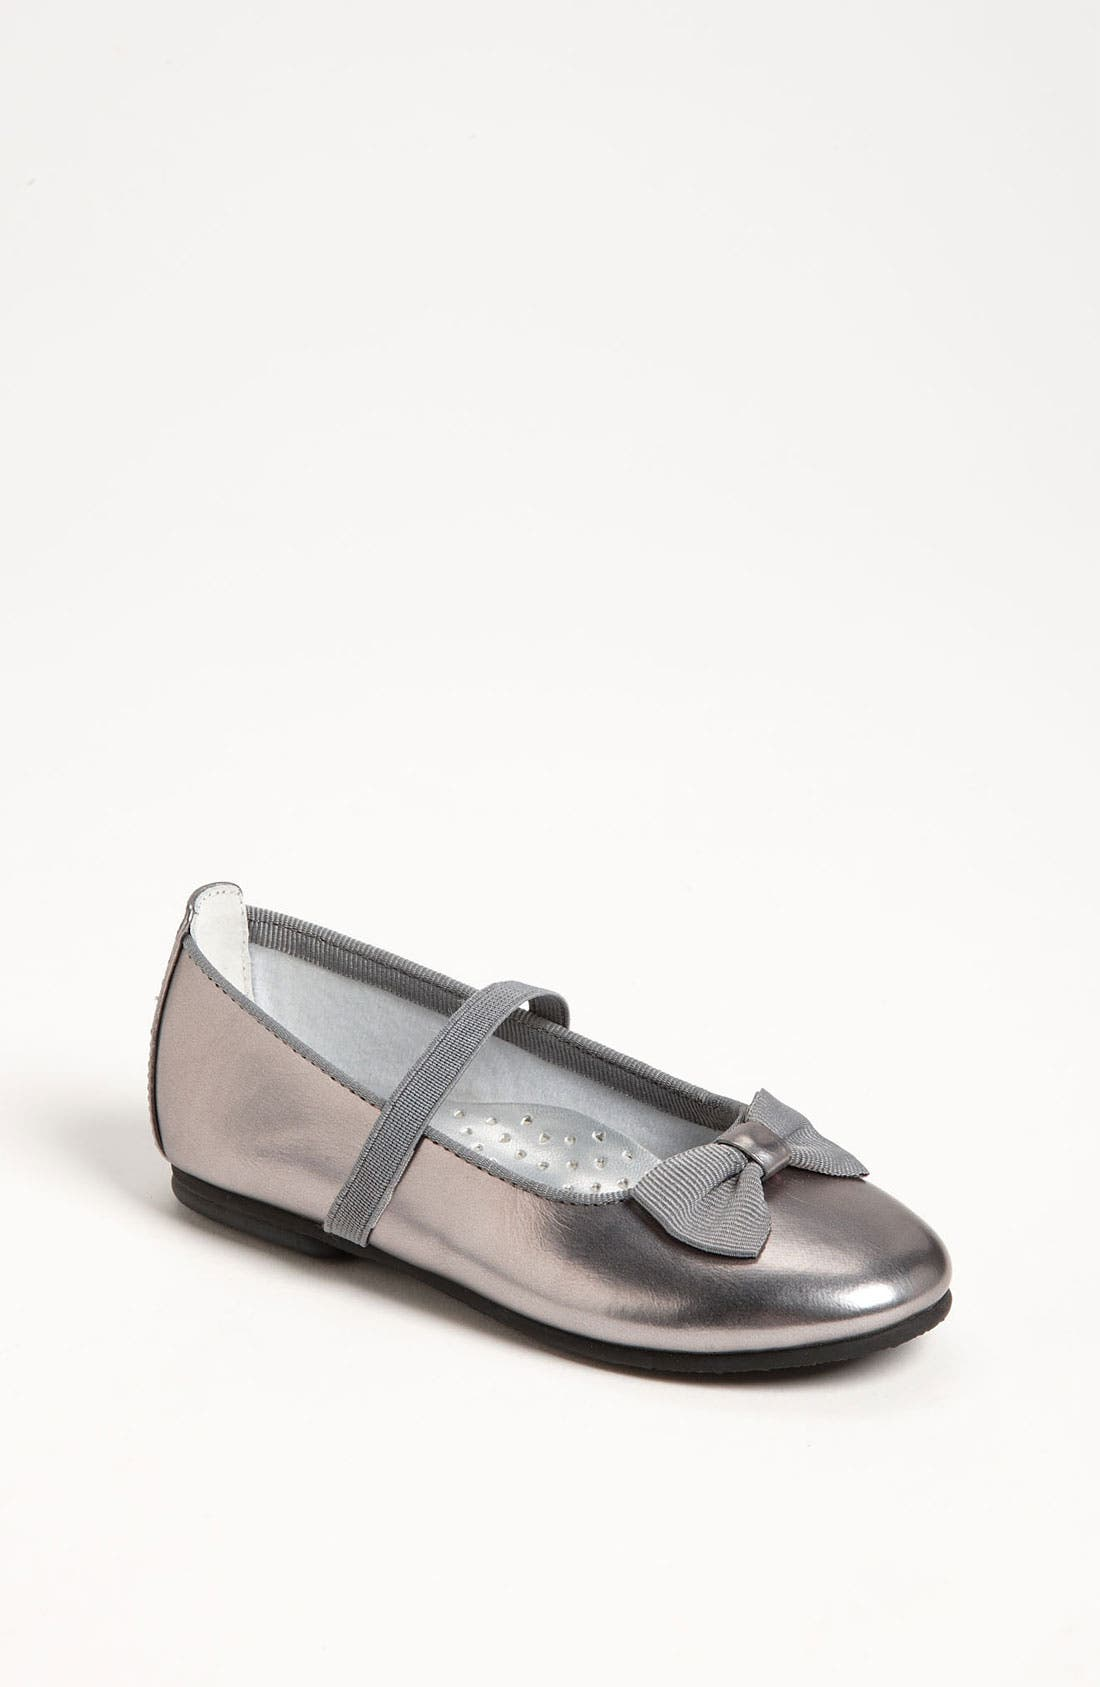 'Marcy' Flat,                         Main,                         color, Shiny Pewter